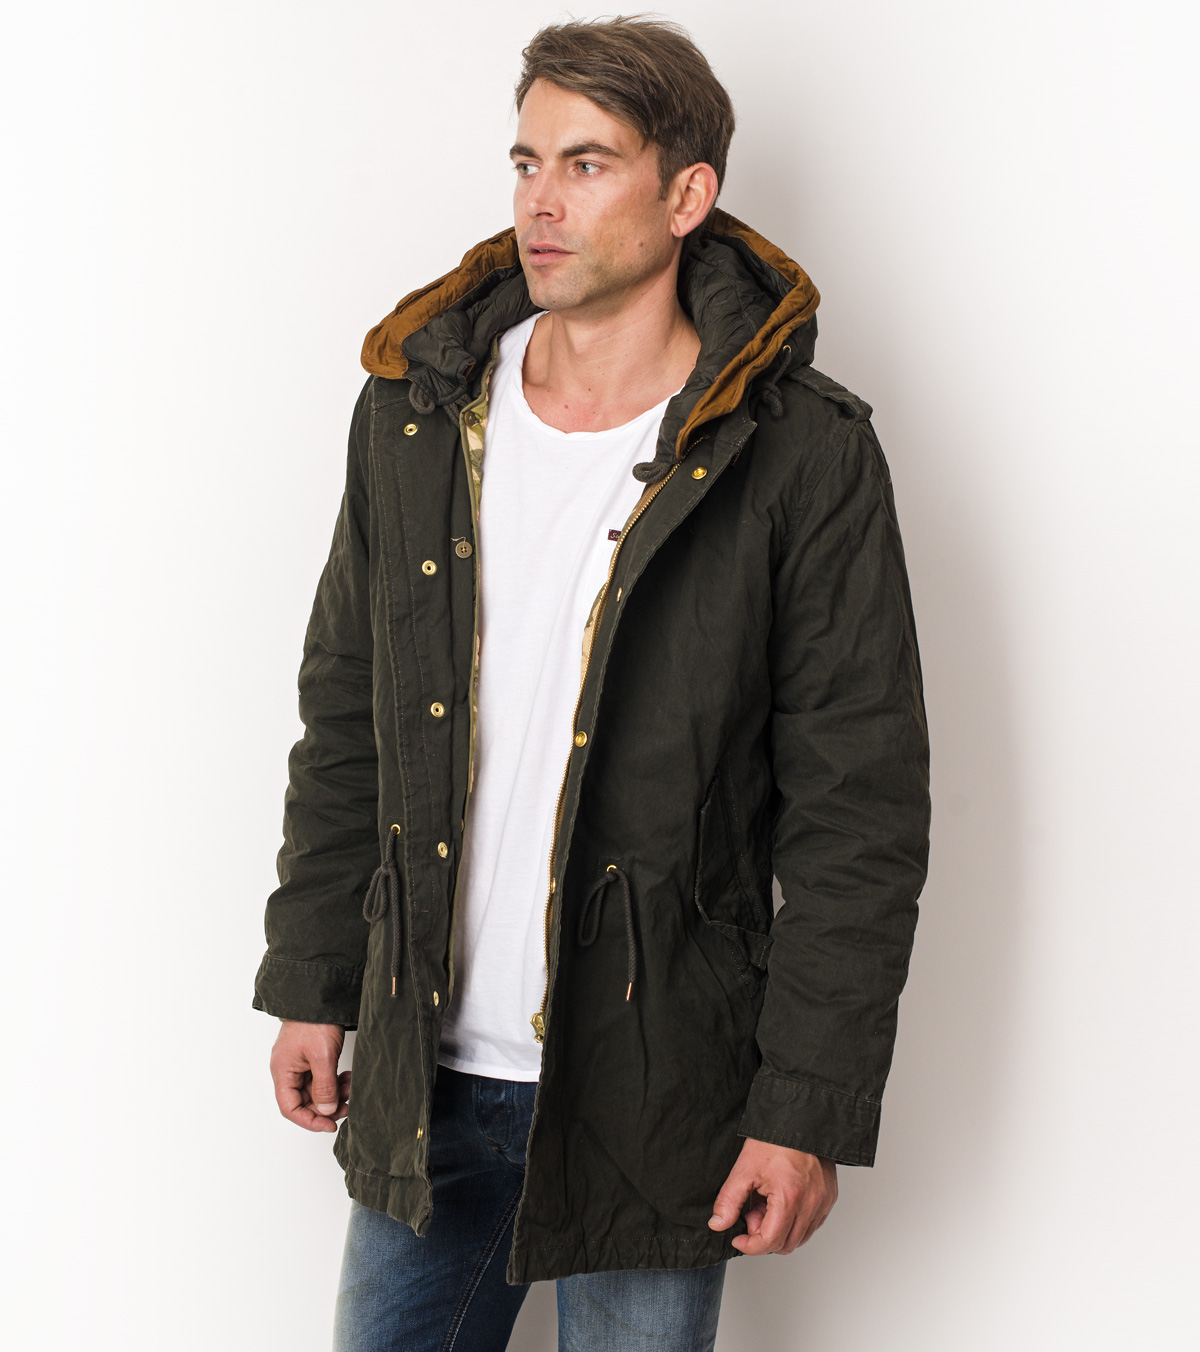 scotch and soda parka herren hoodboyz innerhalb von. Black Bedroom Furniture Sets. Home Design Ideas